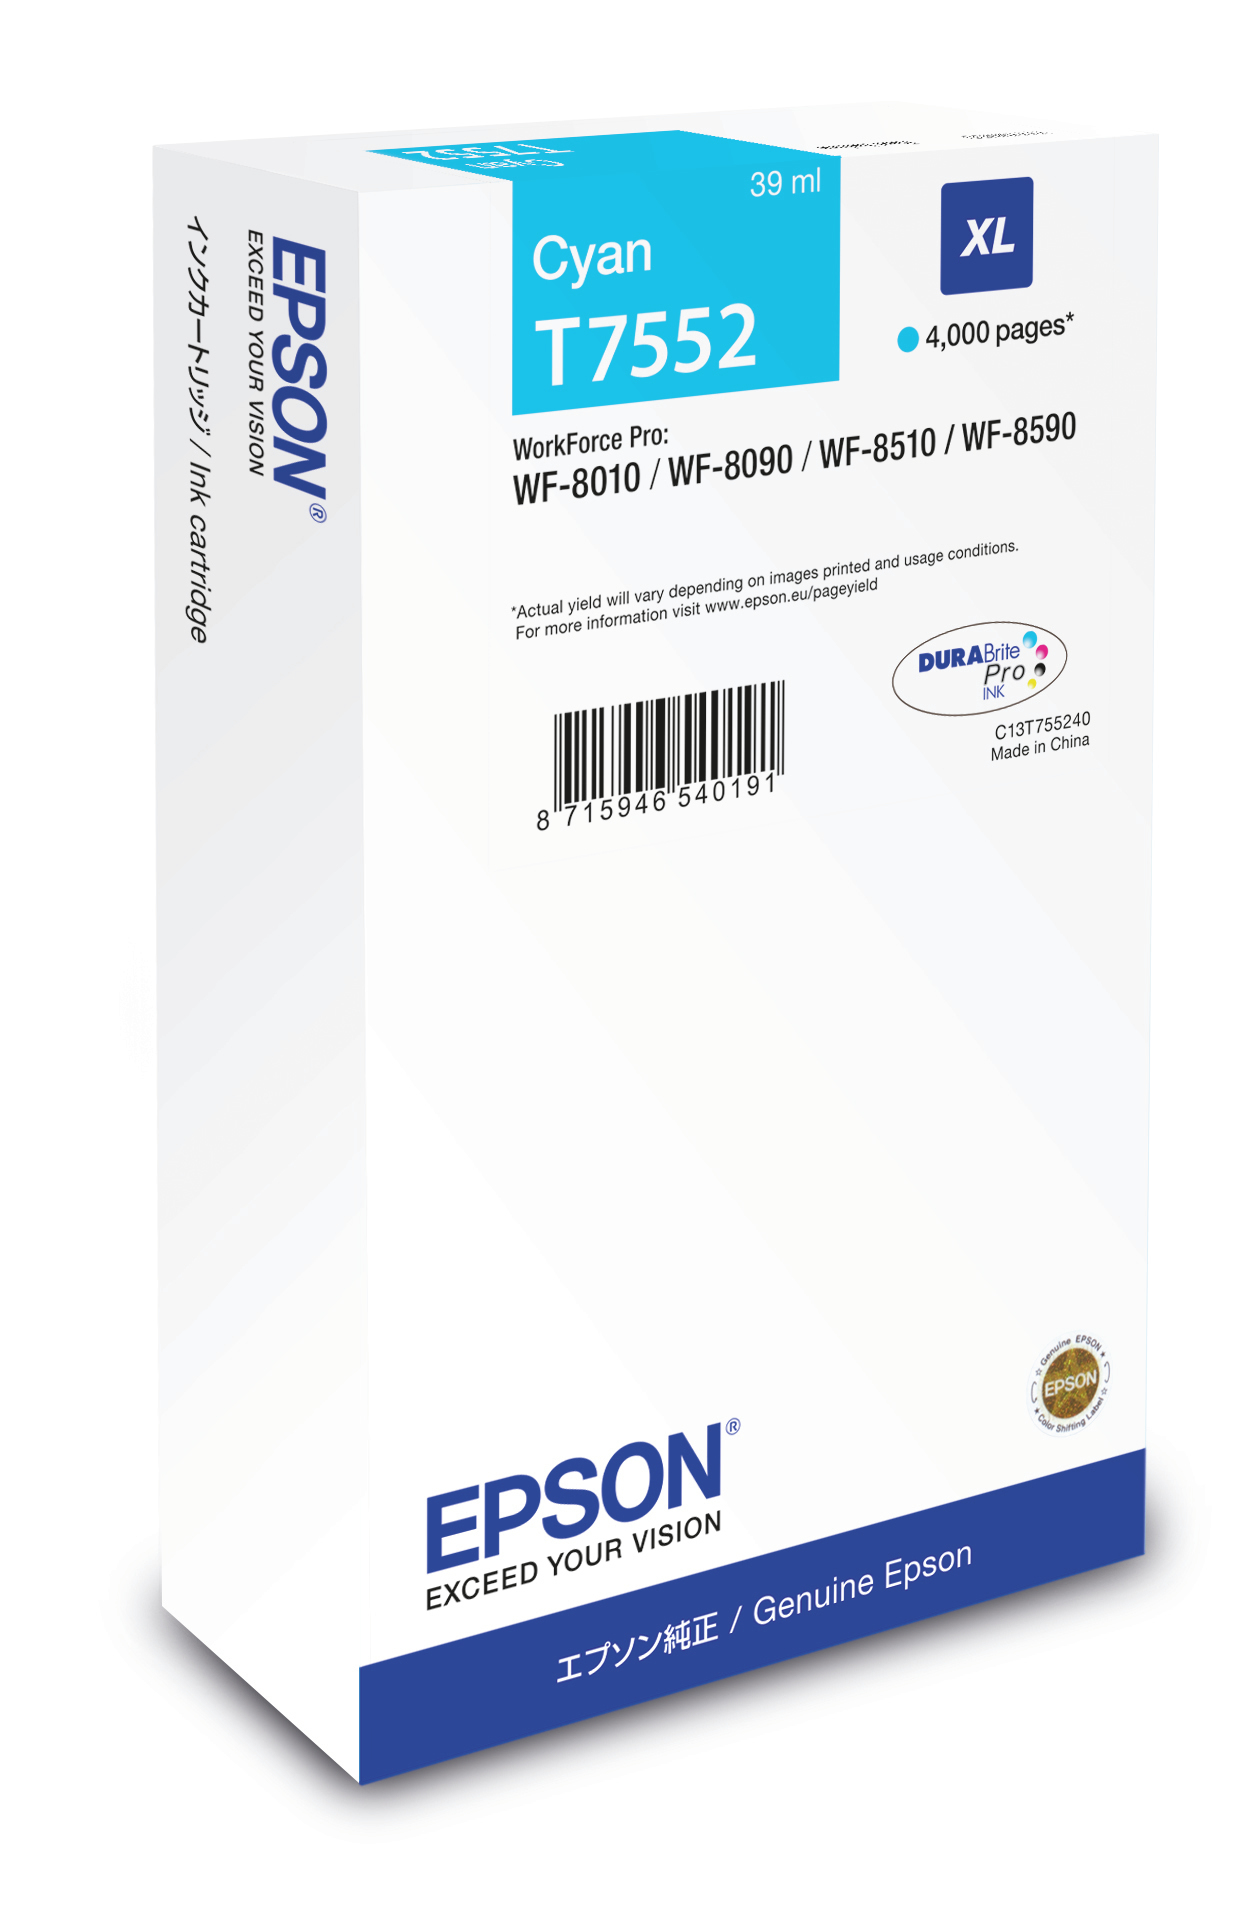 Epst755240     Epson Wf 8000 Series Cyan      Ink Cartridge Xl 4000 Pages                                  - UF01